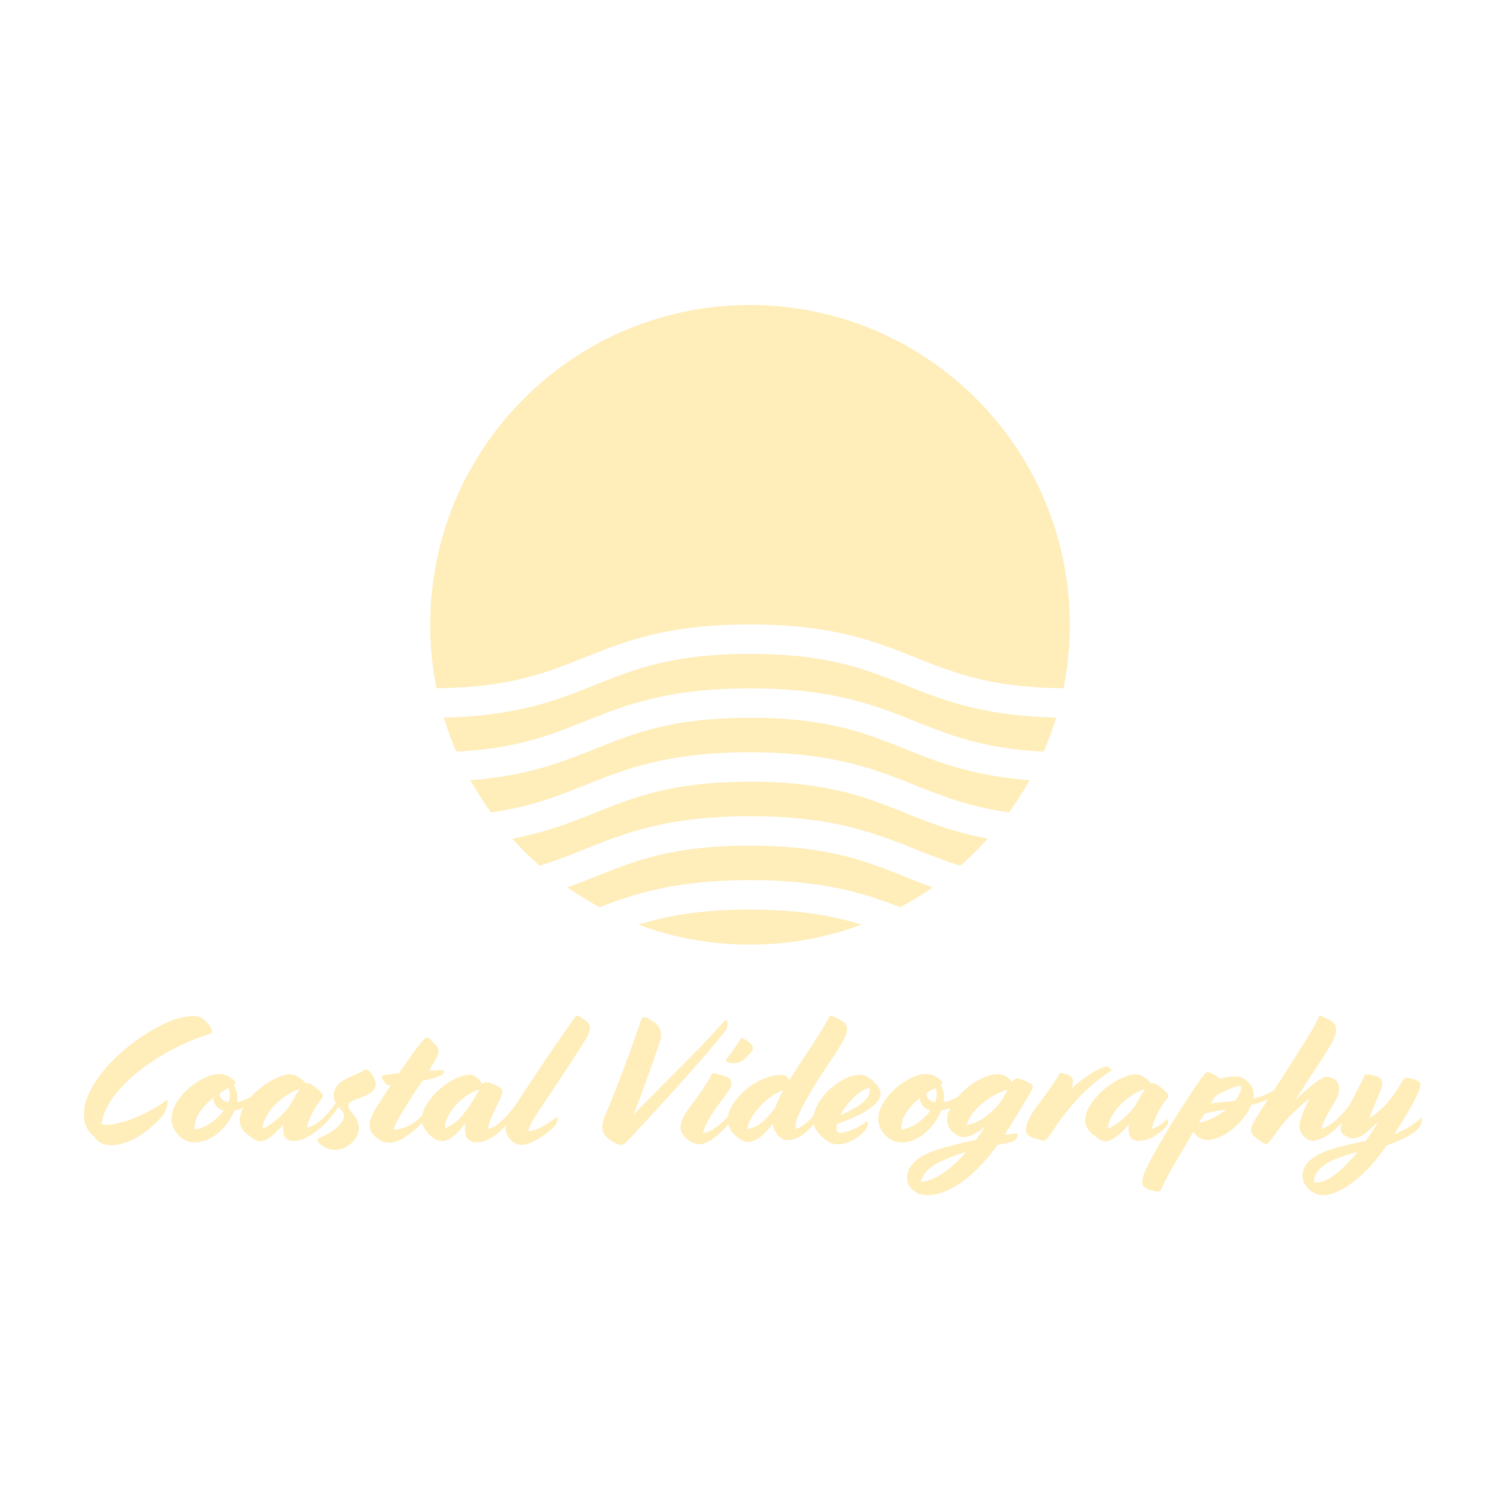 Coastal Videography